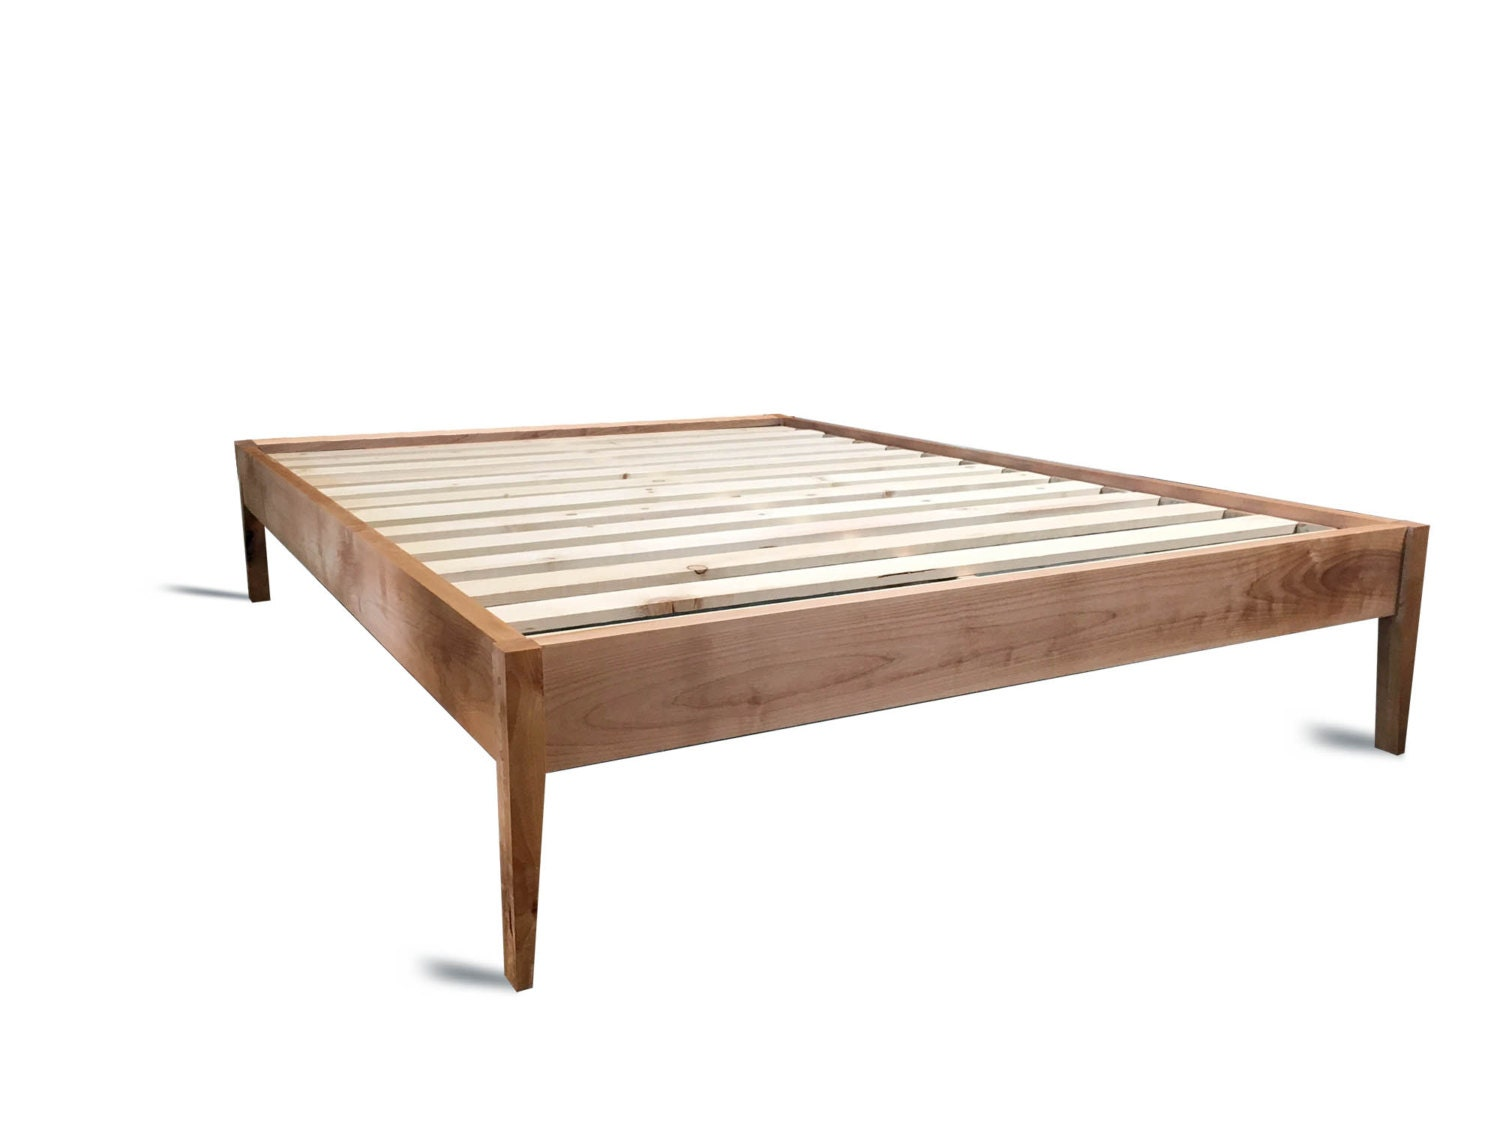 Platform bed frame simple wood bed with sleek tapered legs Simple wood bed frame designs